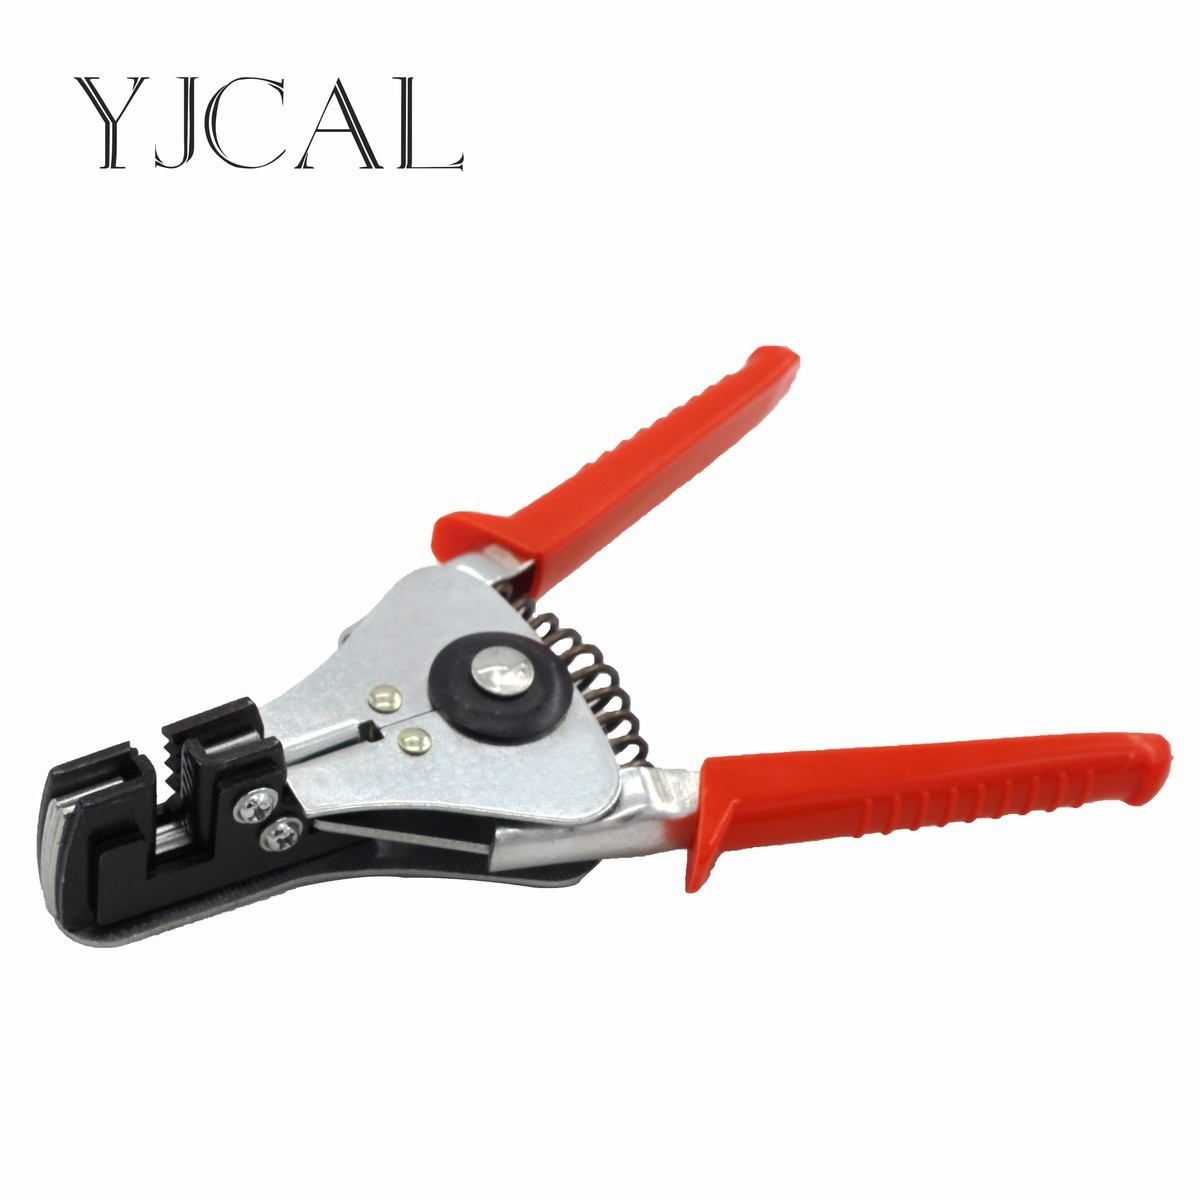 Automatic Stripping Pliers Wire Stripper Cutter Crimping Peeler Forceps Cable Tools Terminal Multifunctional Hand Tool чехол it baggage для планшета lenovo tab 3 10 business x70f x70l искусственная кожа белый itln3a102 0